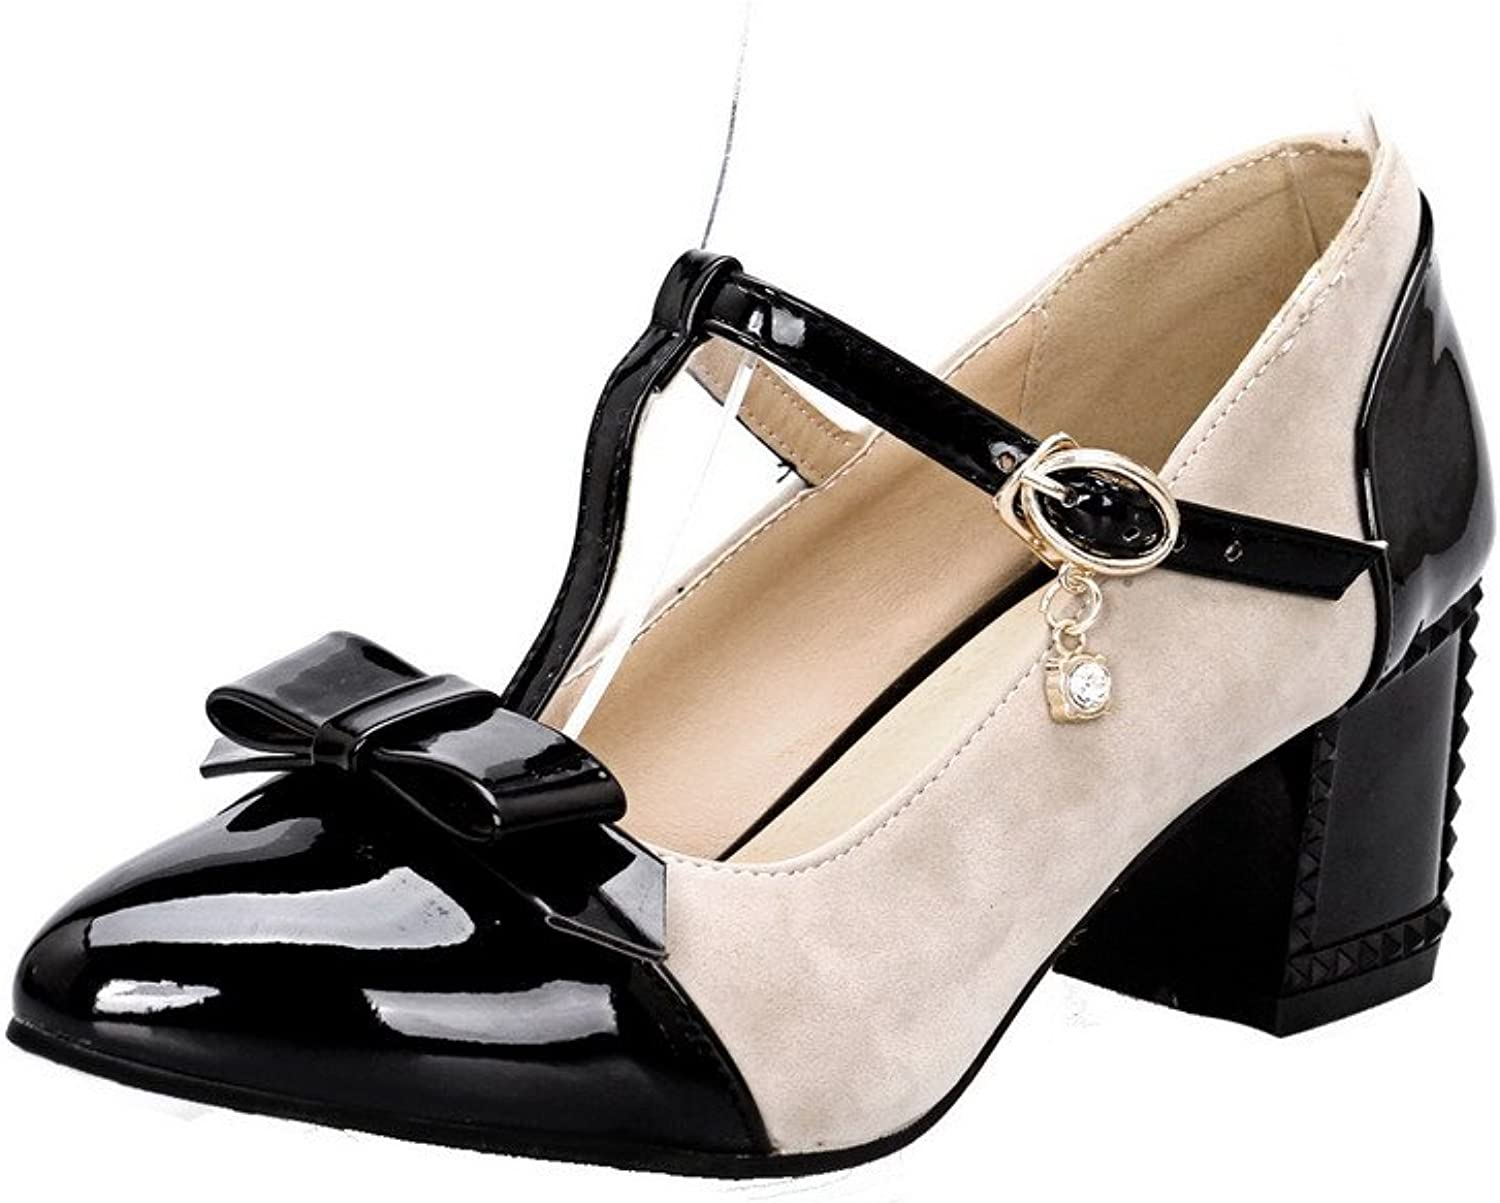 WeiPoot Women's Assorted color Soft Material Low-Heels Buckle Pointed Closed Toe Pumps-shoes